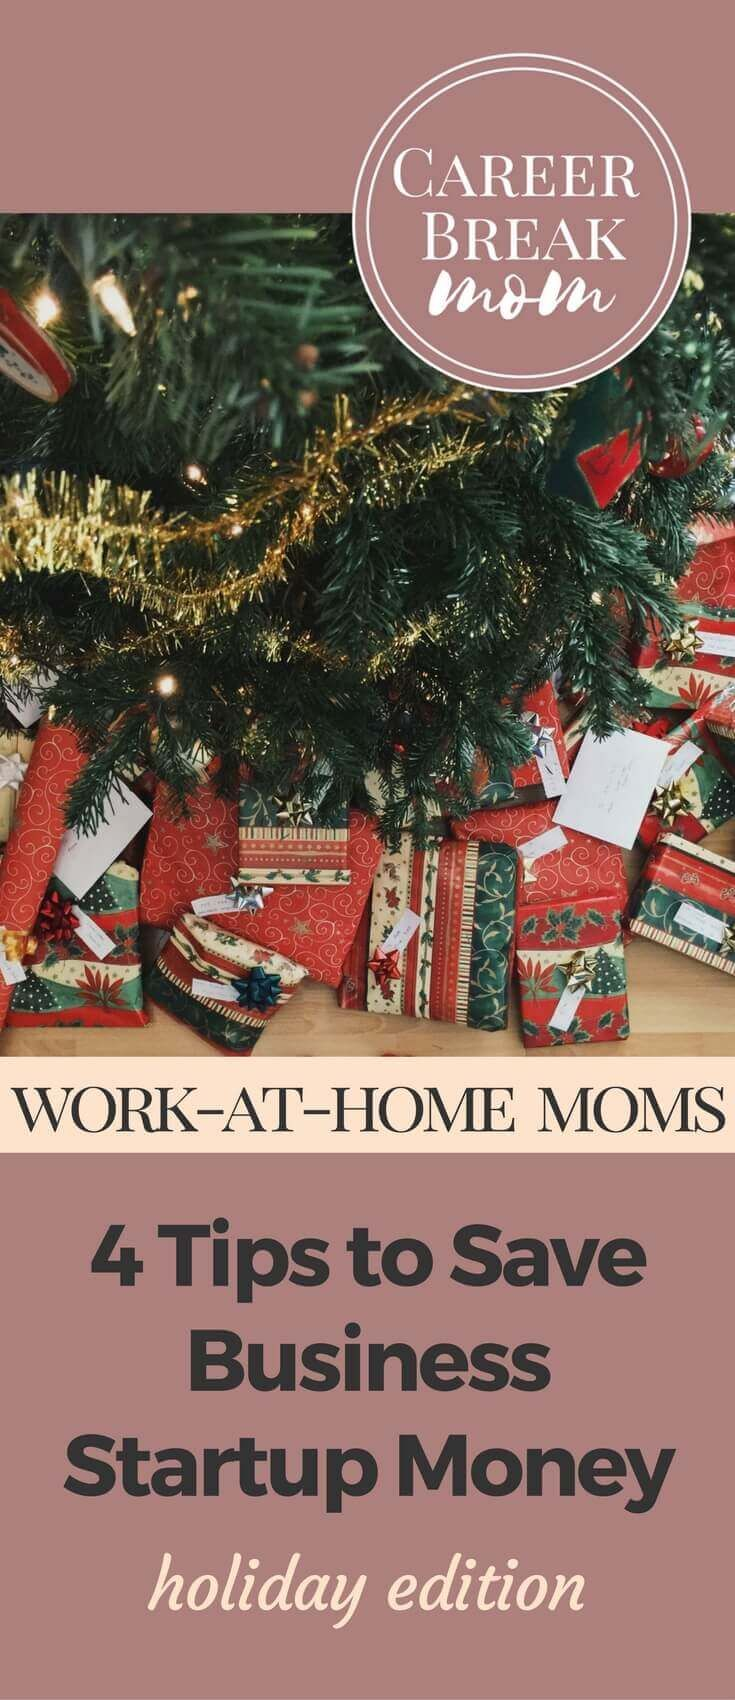 Four Holiday Season Tips to Set Aside Startup Money for Your Business or Your Job Hunt - CareerBreakMom.com - Looking to start a business or launch a job search after time away from your career? Take a few minutes to add a few thrifty habits into your holiday season shopping, and you'll find some extra cash that you can put toward your business, a new wardrobe or to help you cover childcare costs before you get that first paycheck!